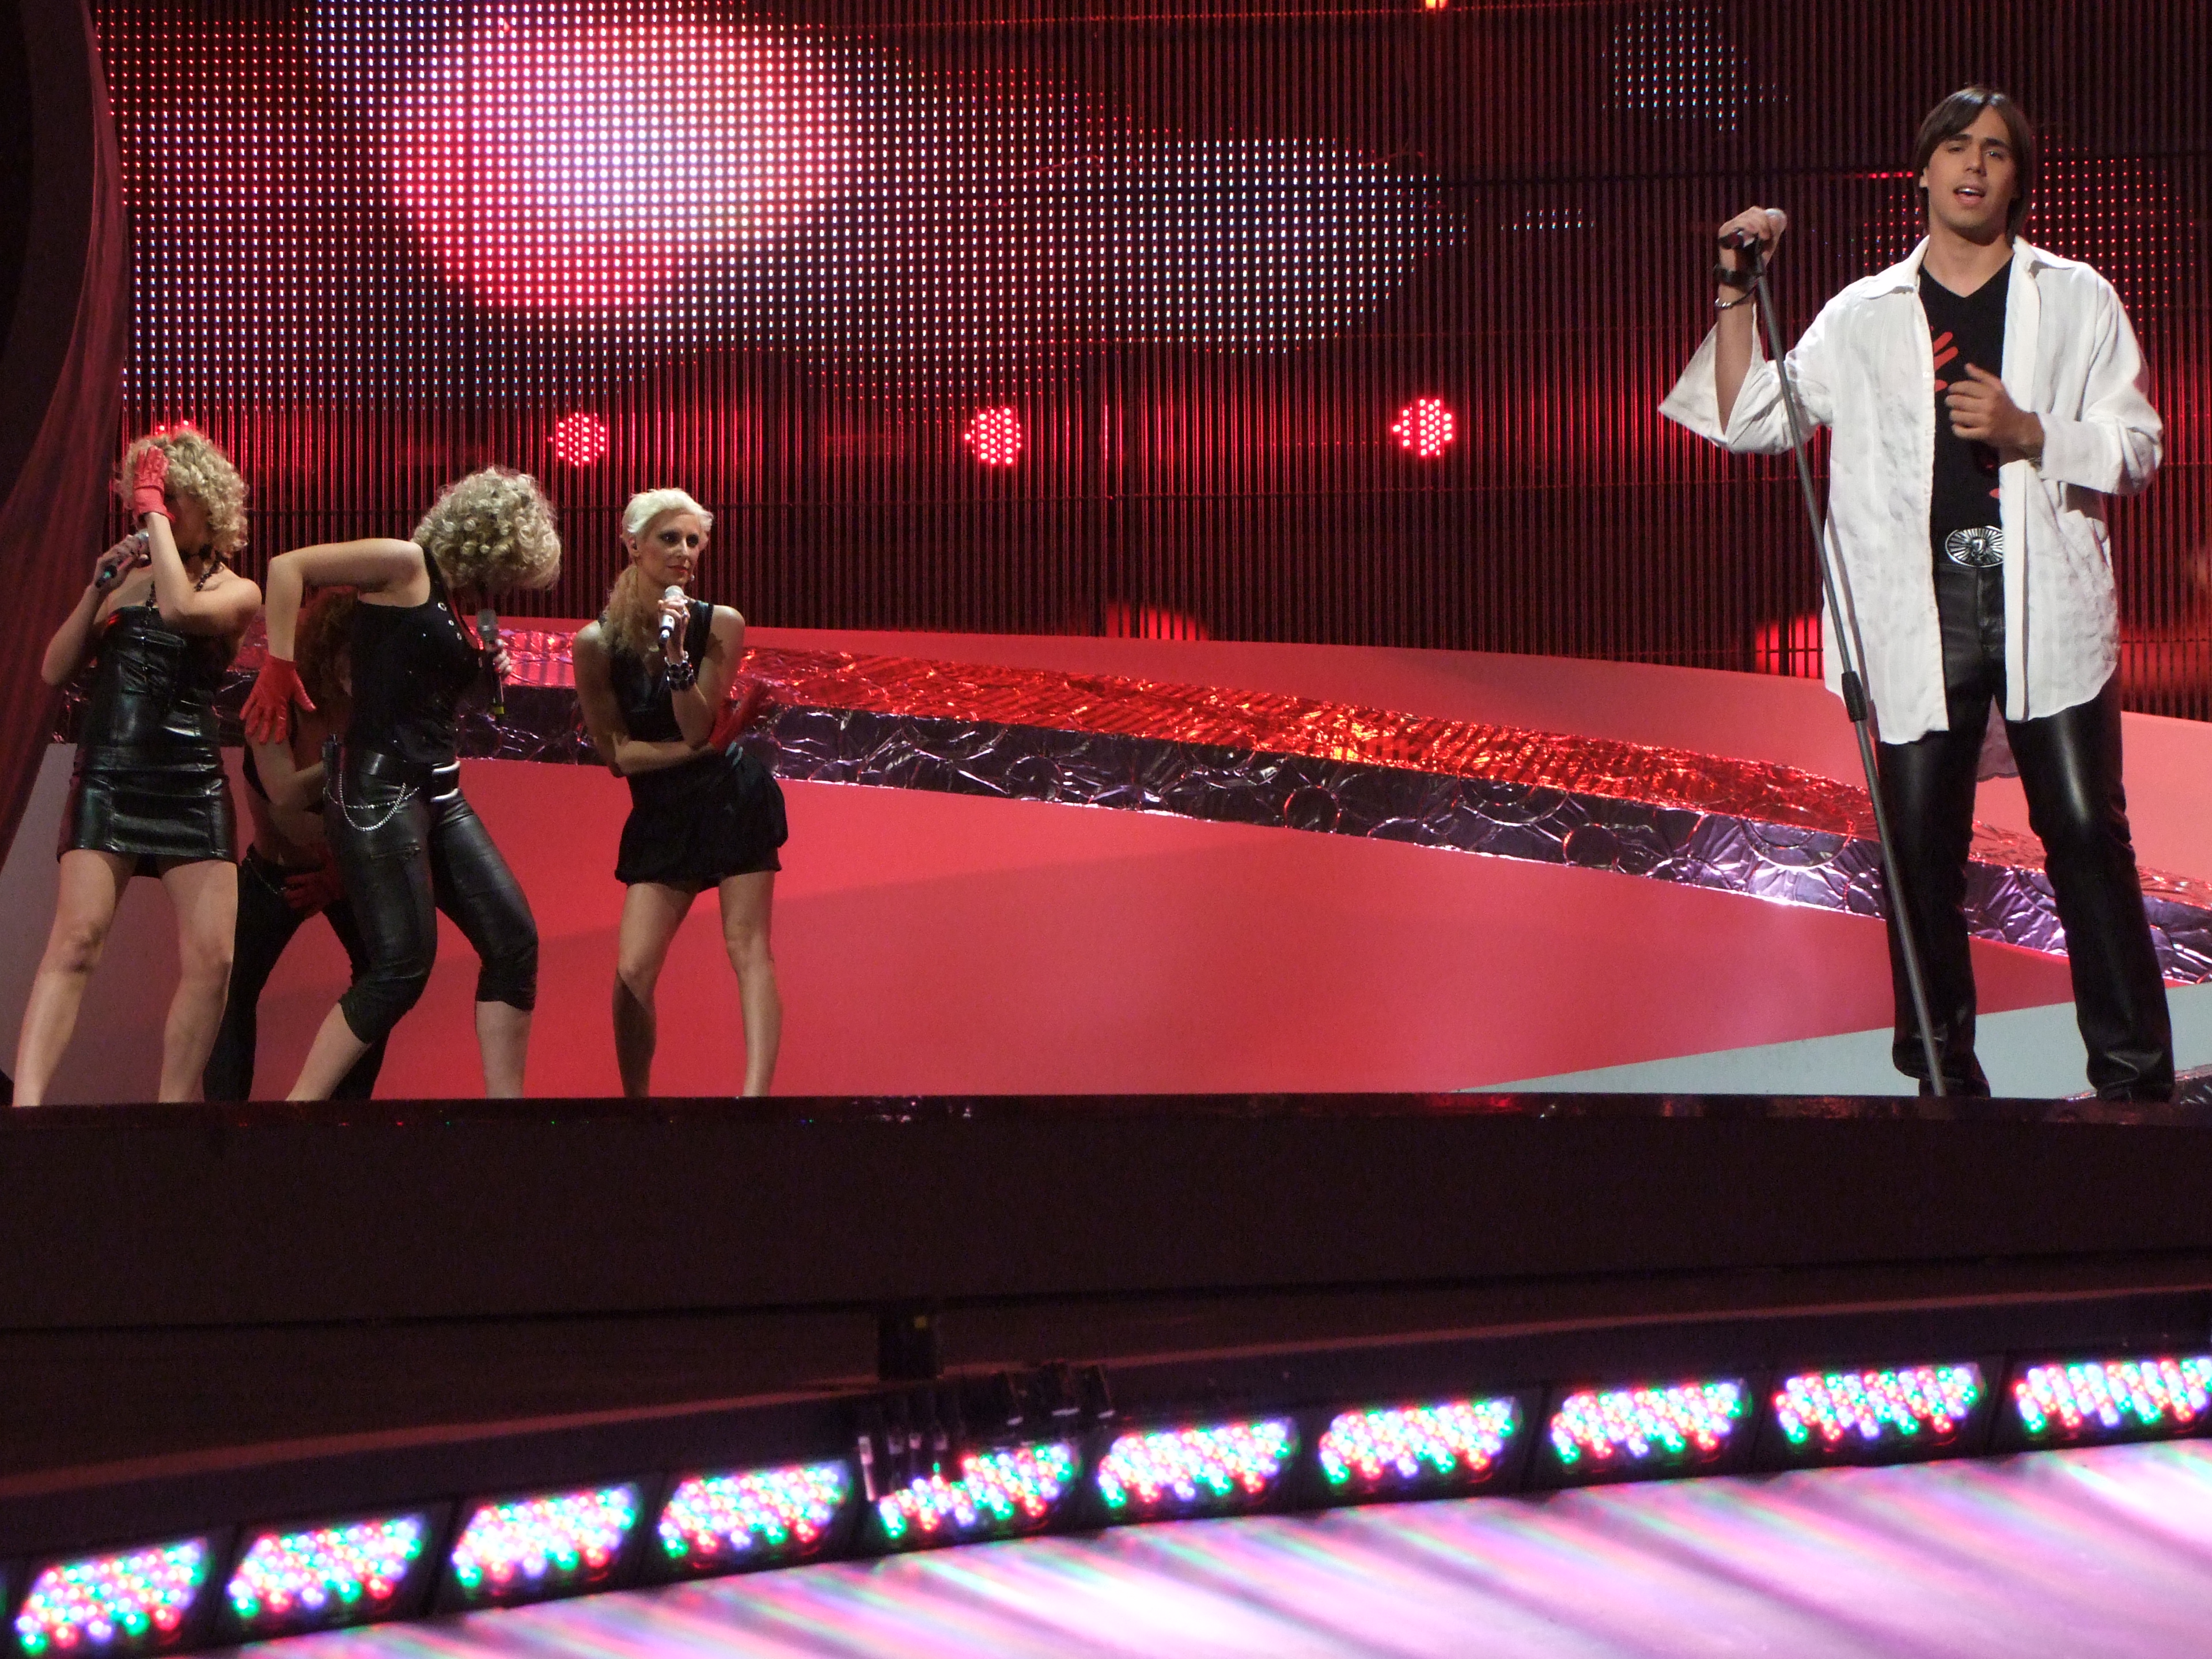 File:Flickr - proteusbcn - Semifinal 1 EUROVISION 2008 (68